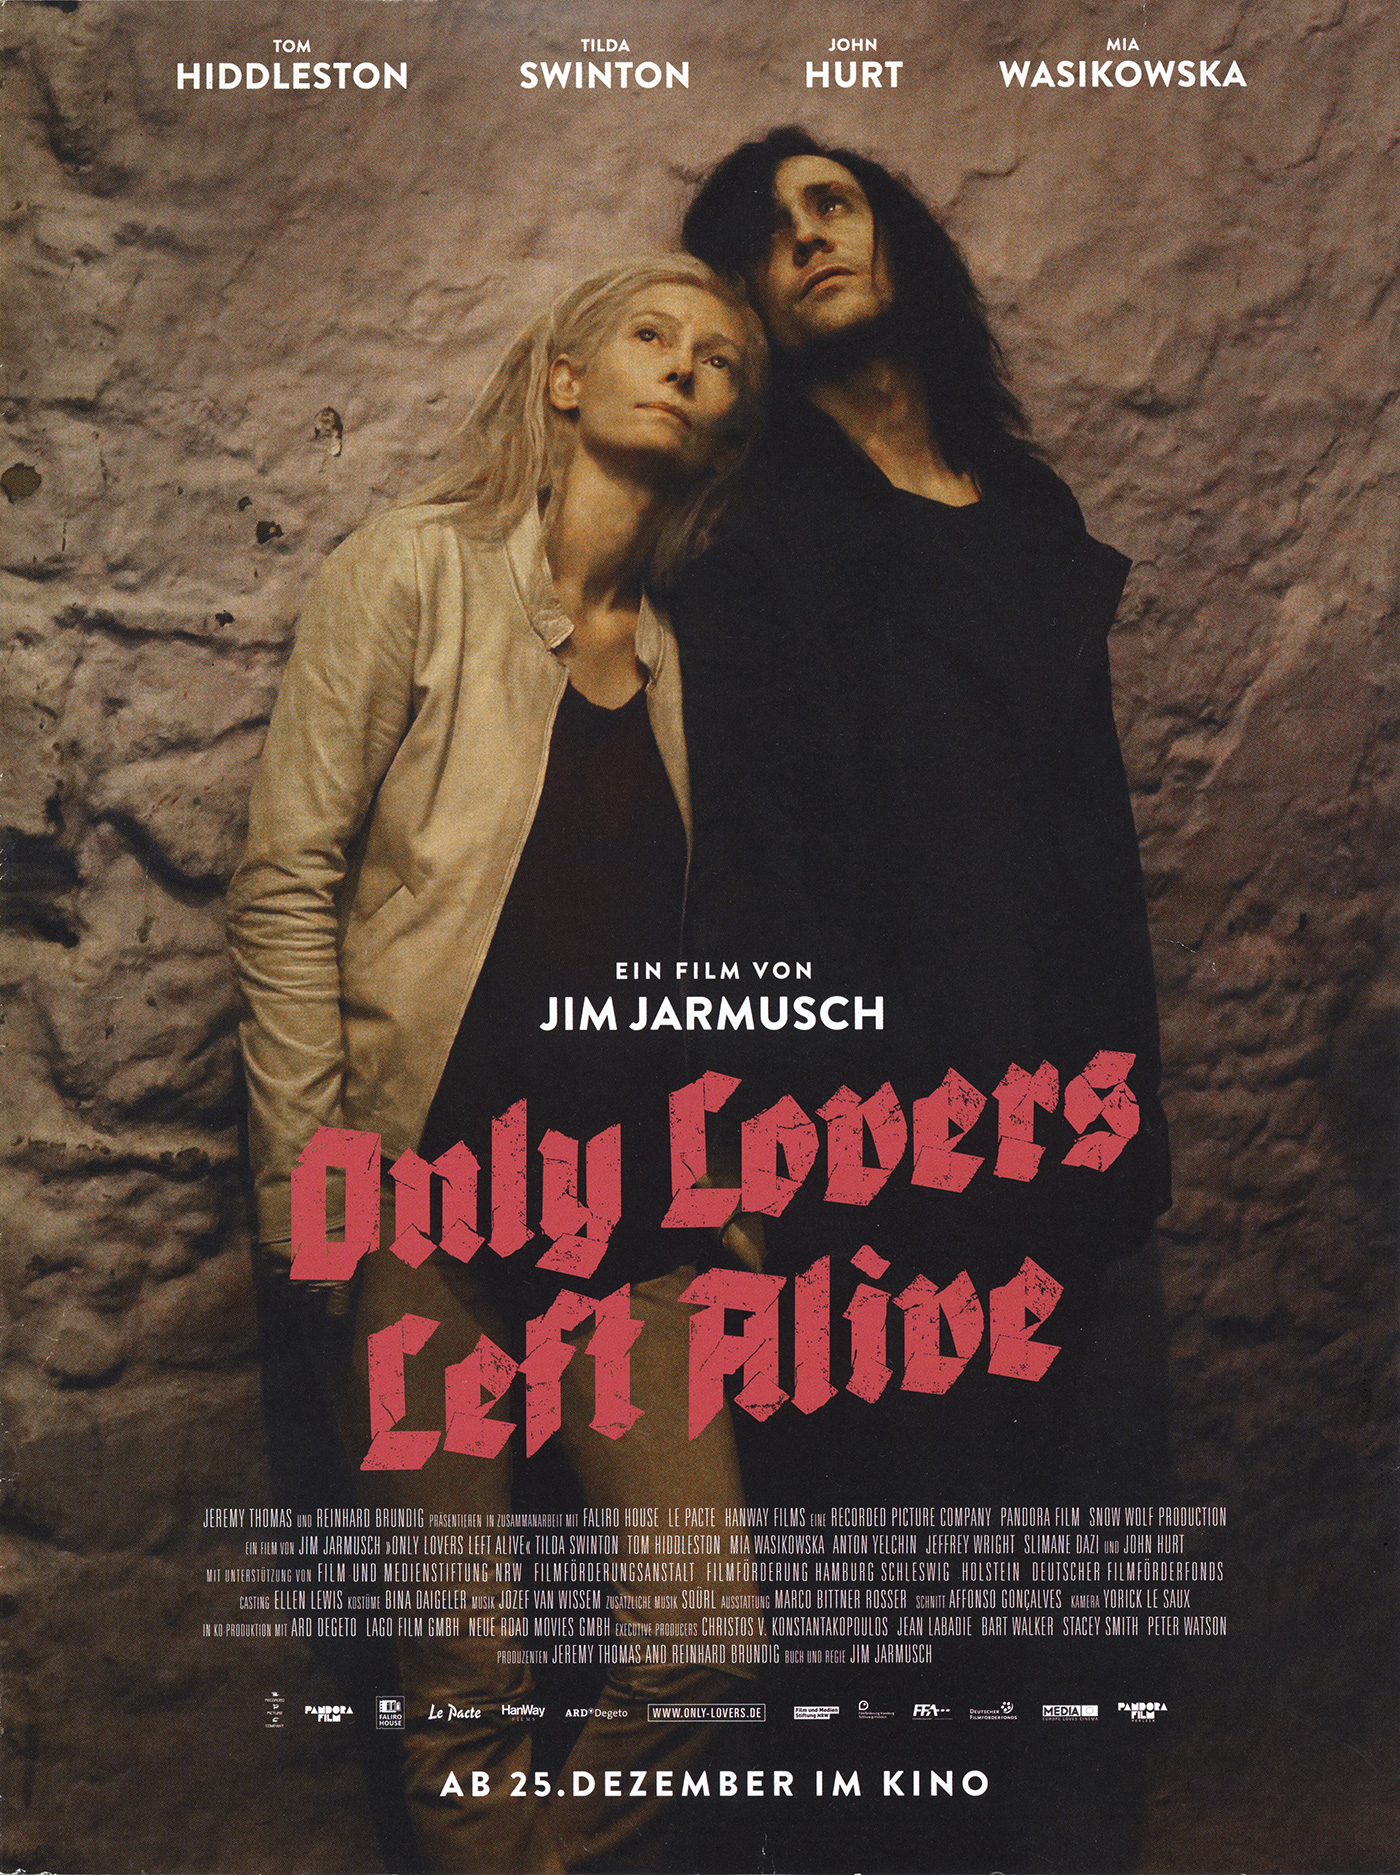 Only-Lovers-Print-Ad